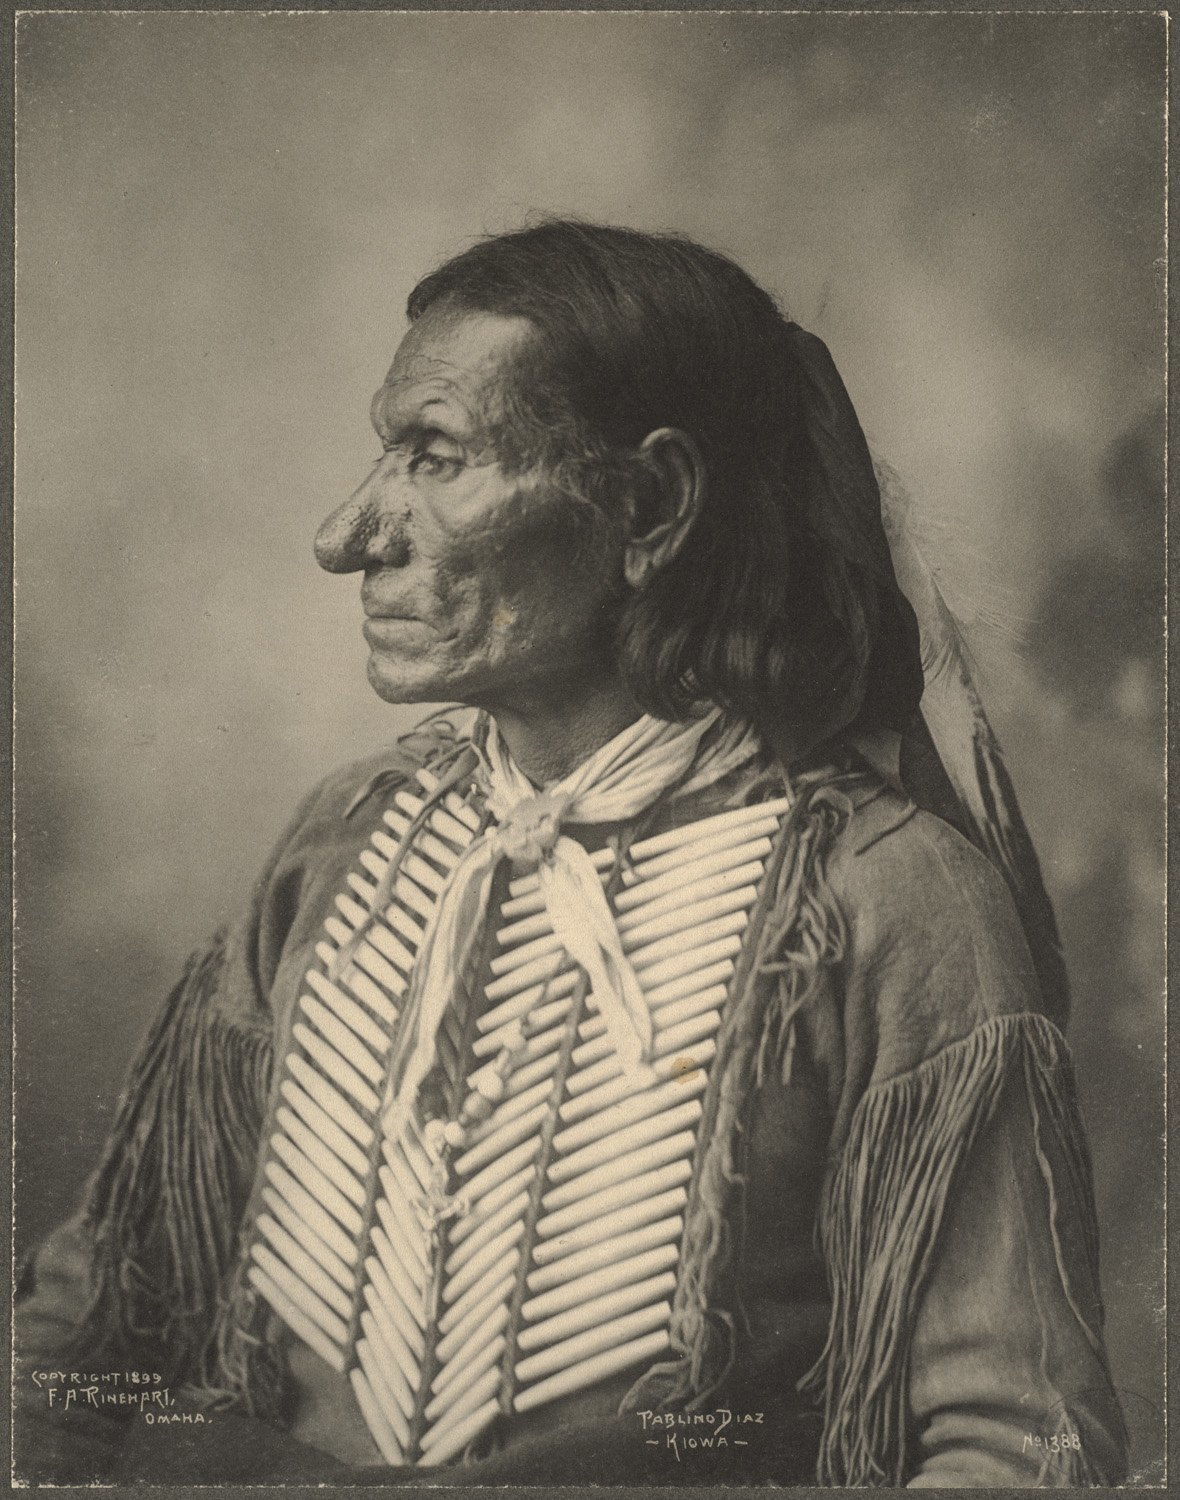 Pablino Diaz, Kiowa, 1899. (Photo by Frank A. Rinehart)